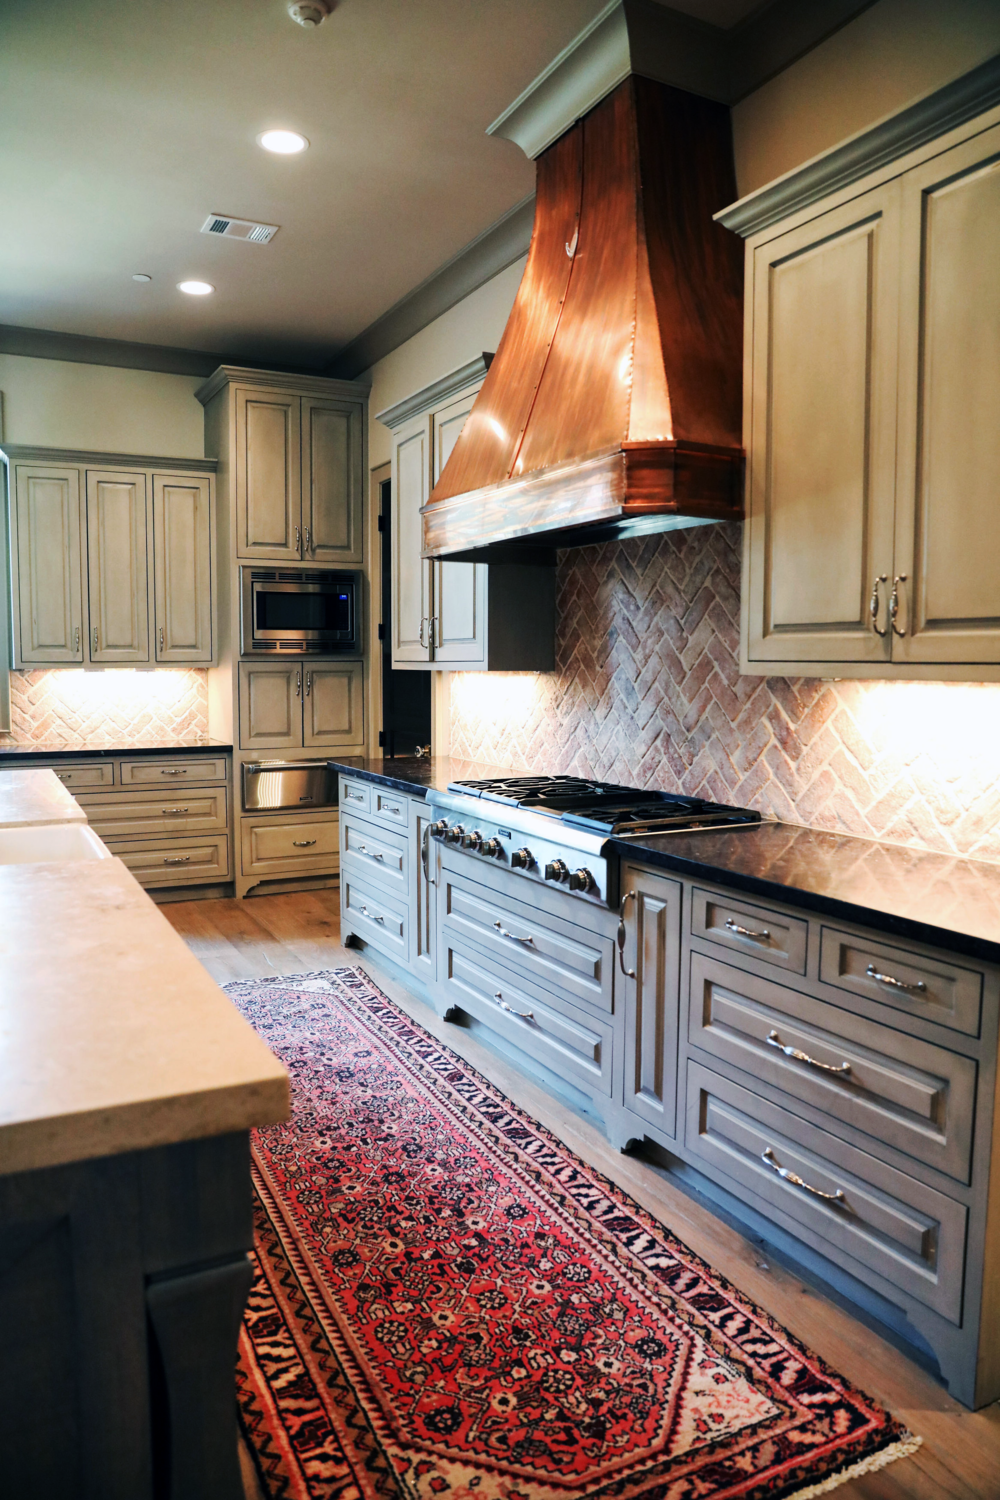 Kitchen cabinet design Houston - Memorial Cabinetry Houston, TX